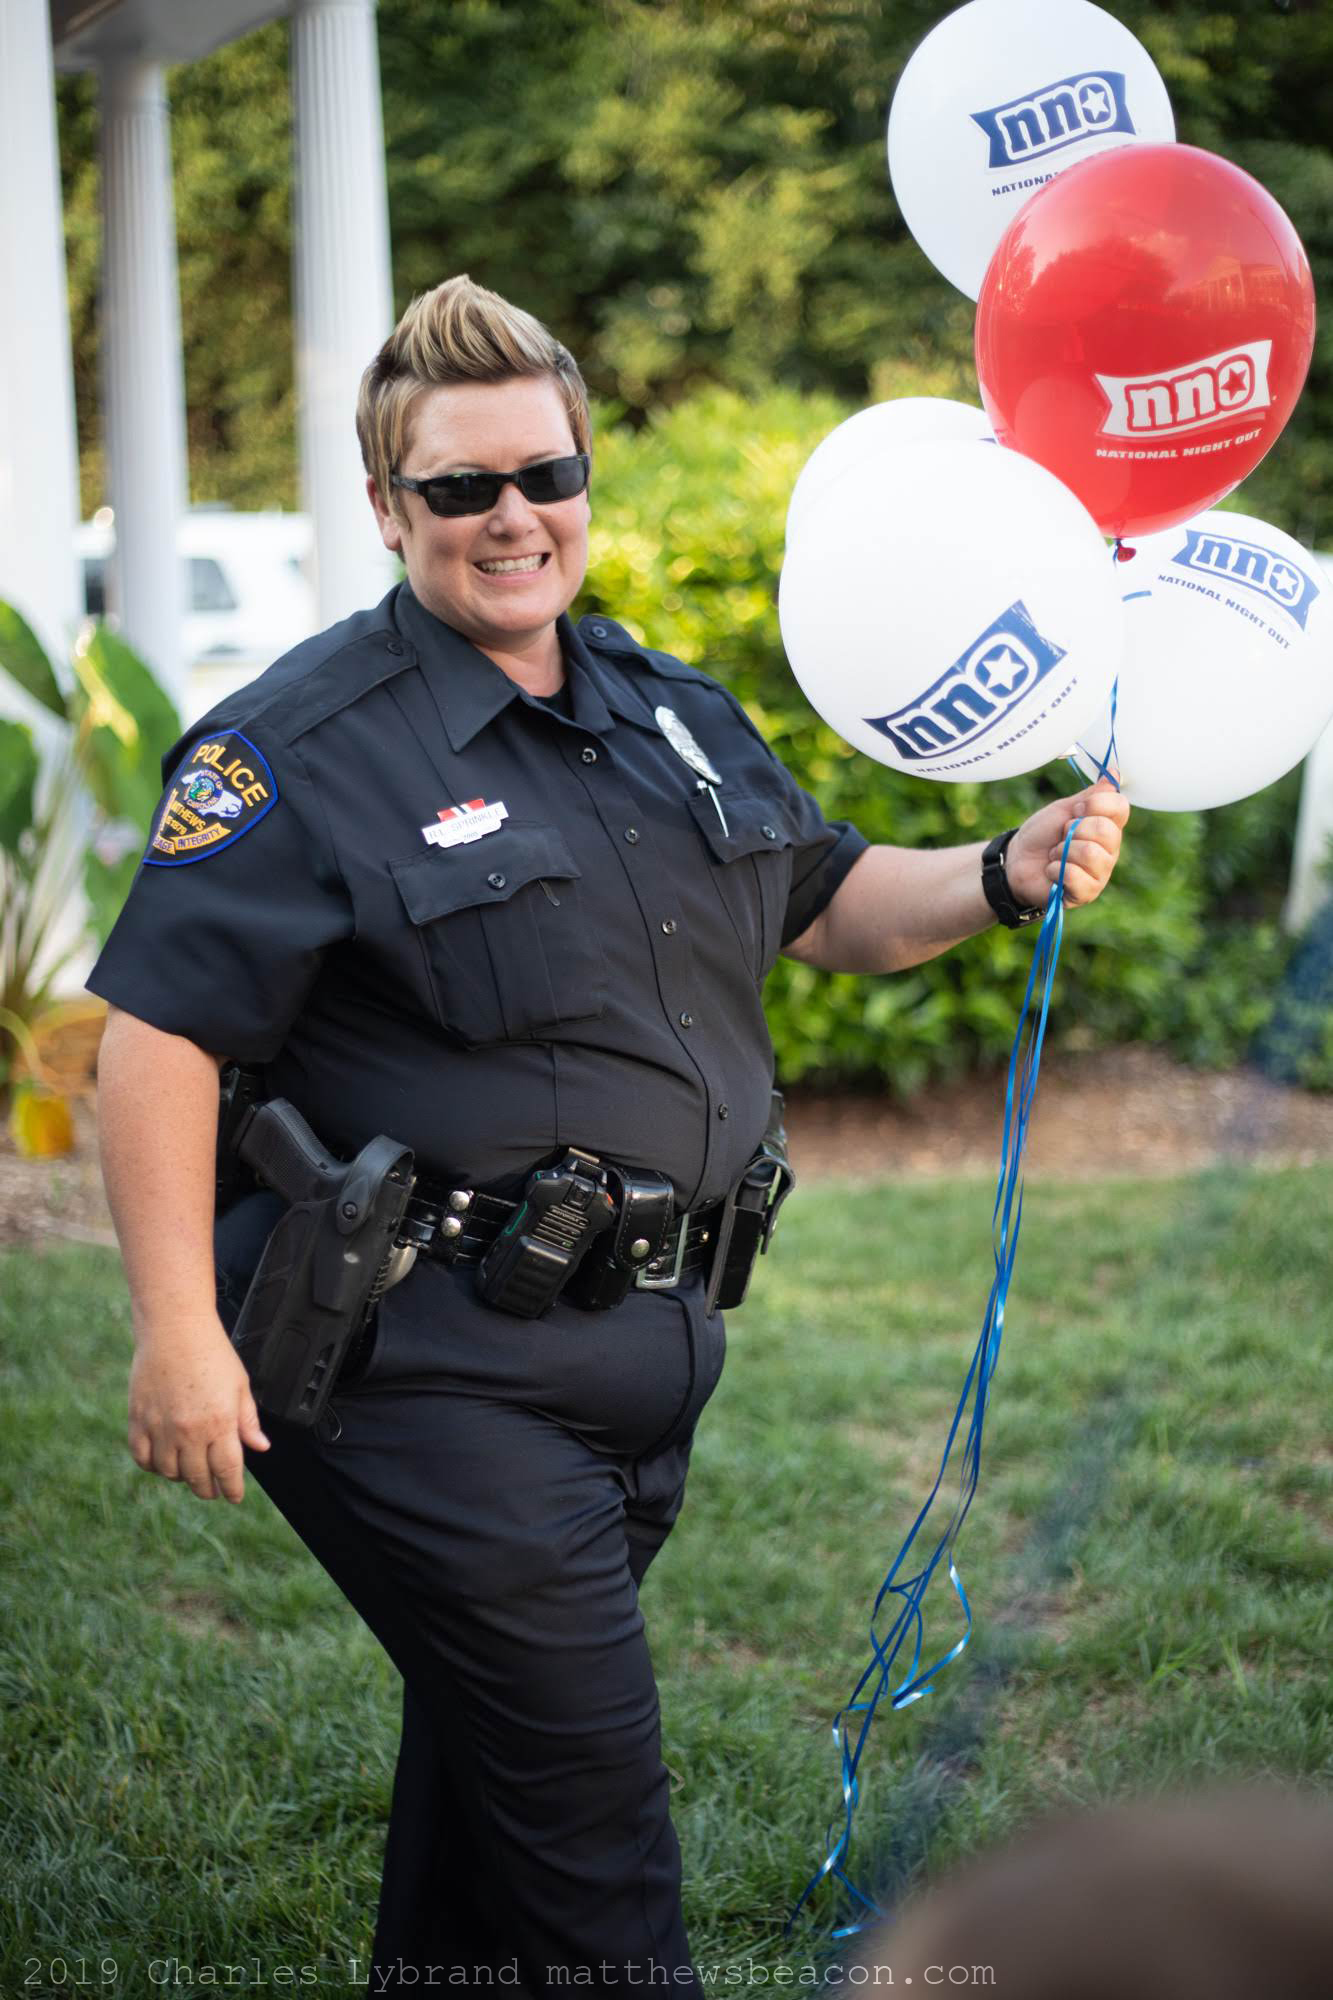 beacon national night out balloons.jpg